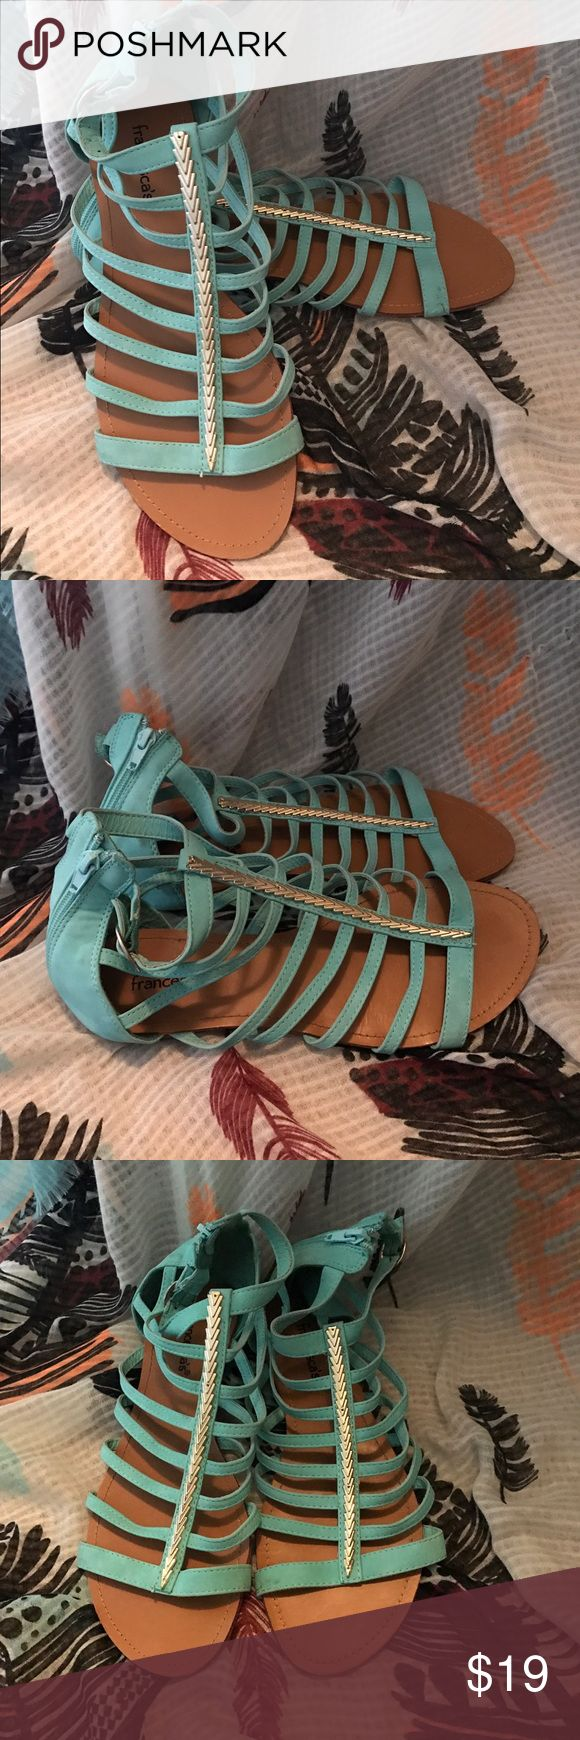 Turquoise Sandal with gold hardware, Size 9 Turquoise Sandal with gold hardware, Size 9, in excellent, gently worn condition. Francesca's Collections Shoes Sandals